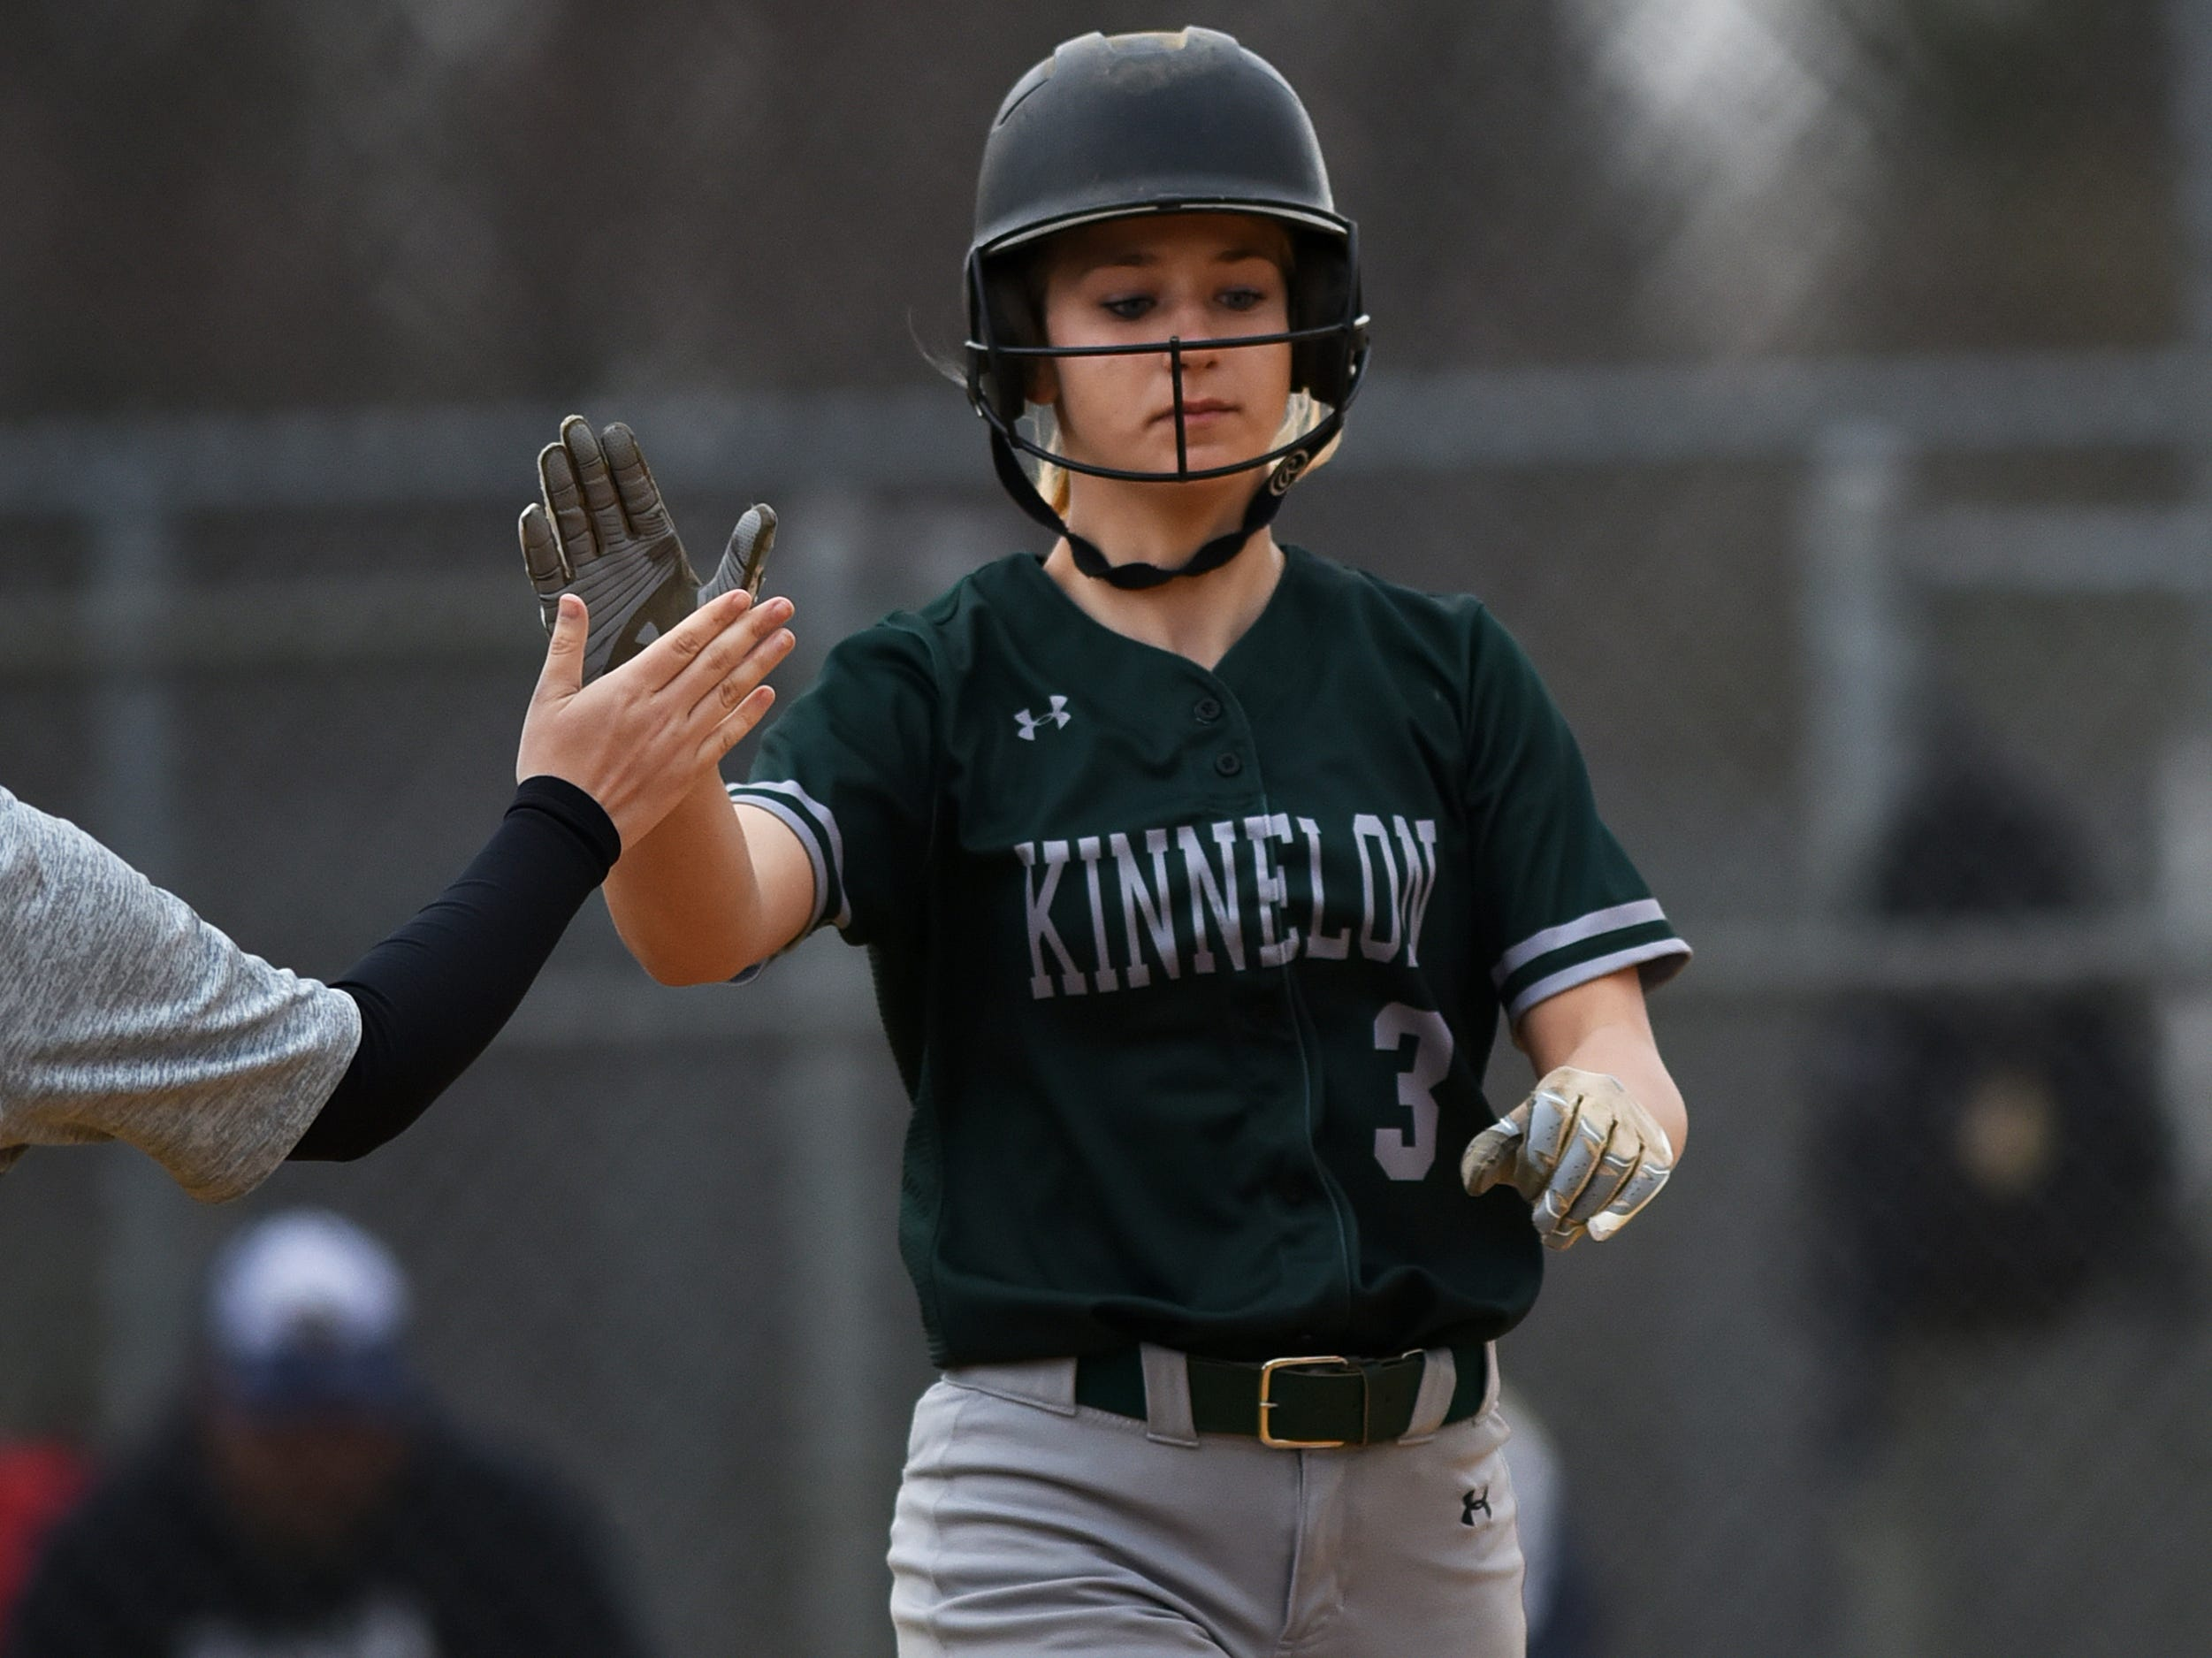 Pequannock at Kinnelon softball game in Kinnelon on Friday April 12, 2019. K#3 Jess Handzo gets a high five as she makes her way to first base.